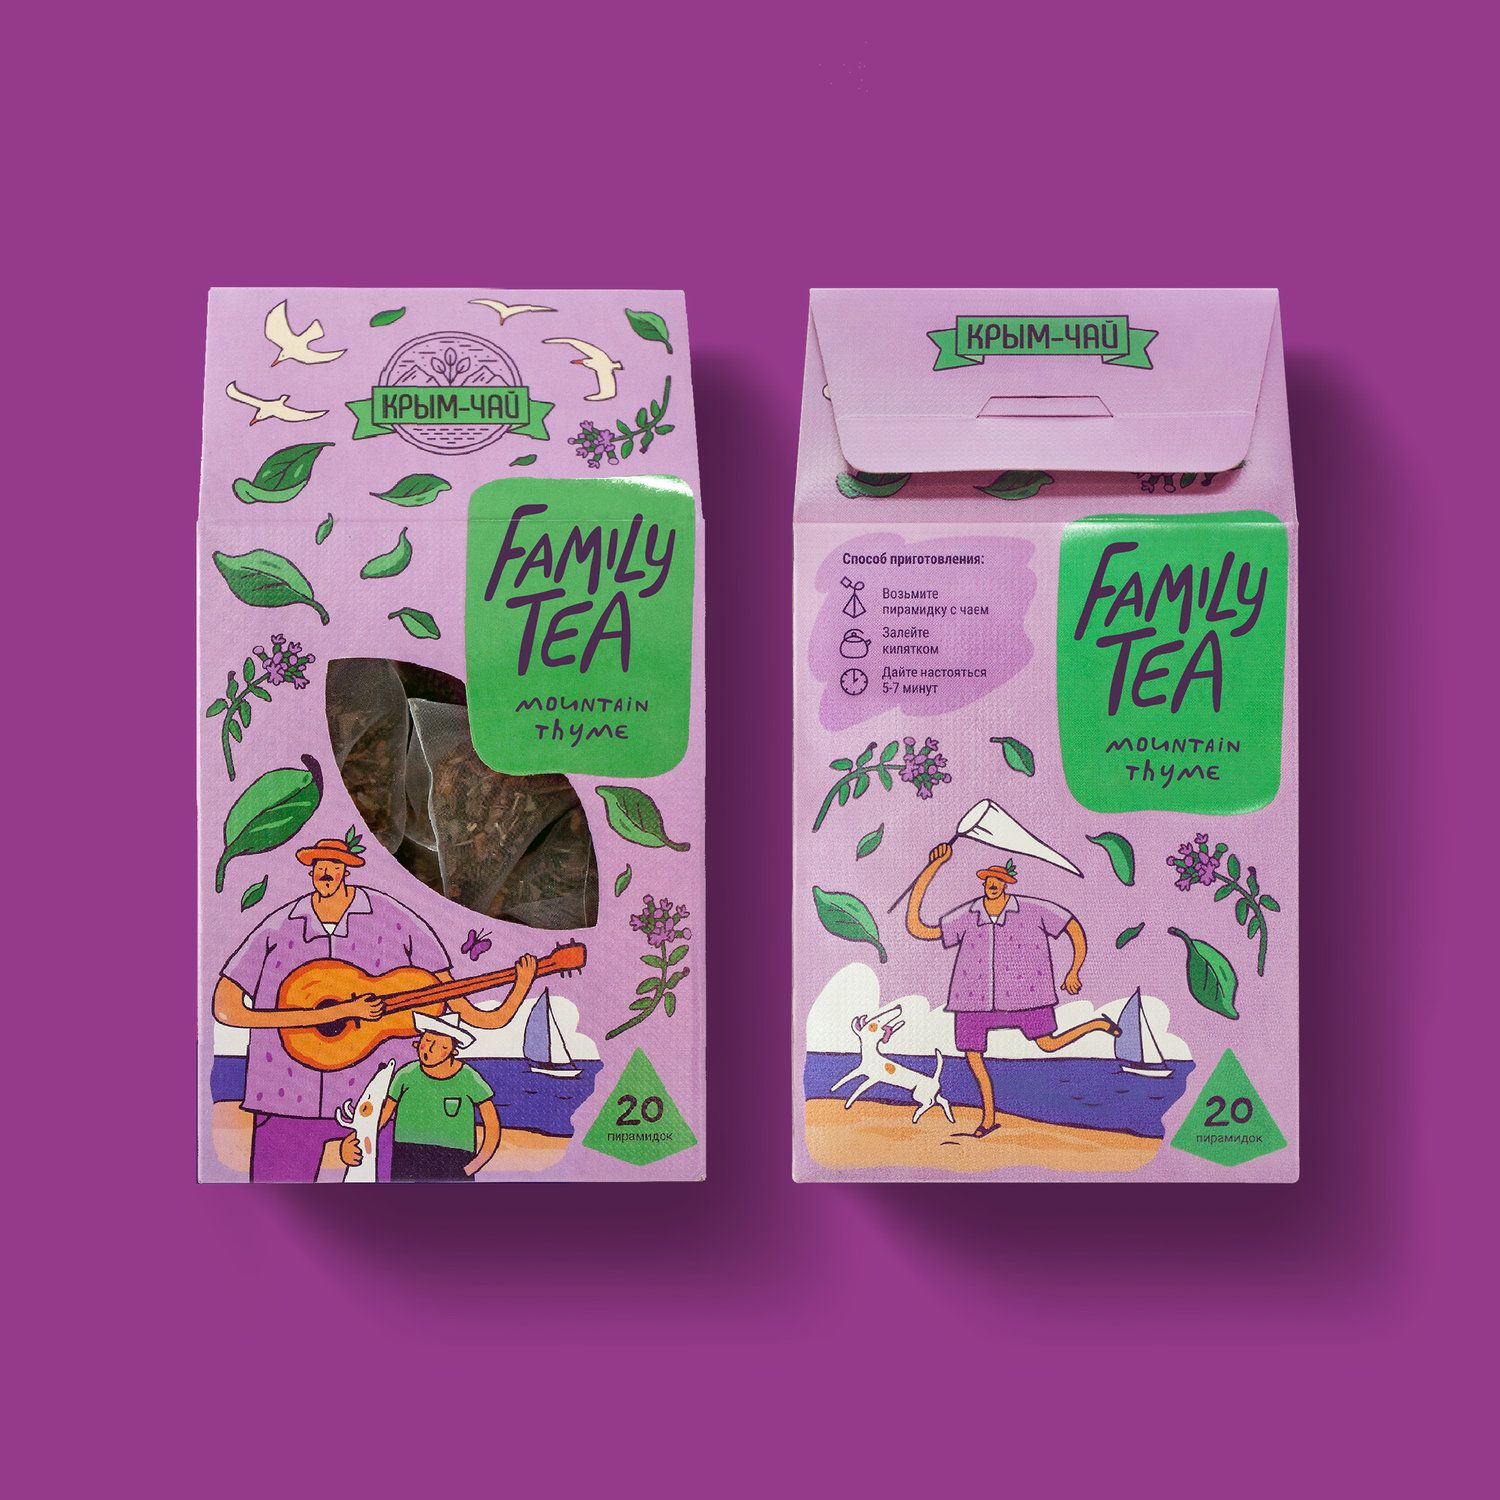 Family Tea, Brand of Herbal Teas #teapackaging